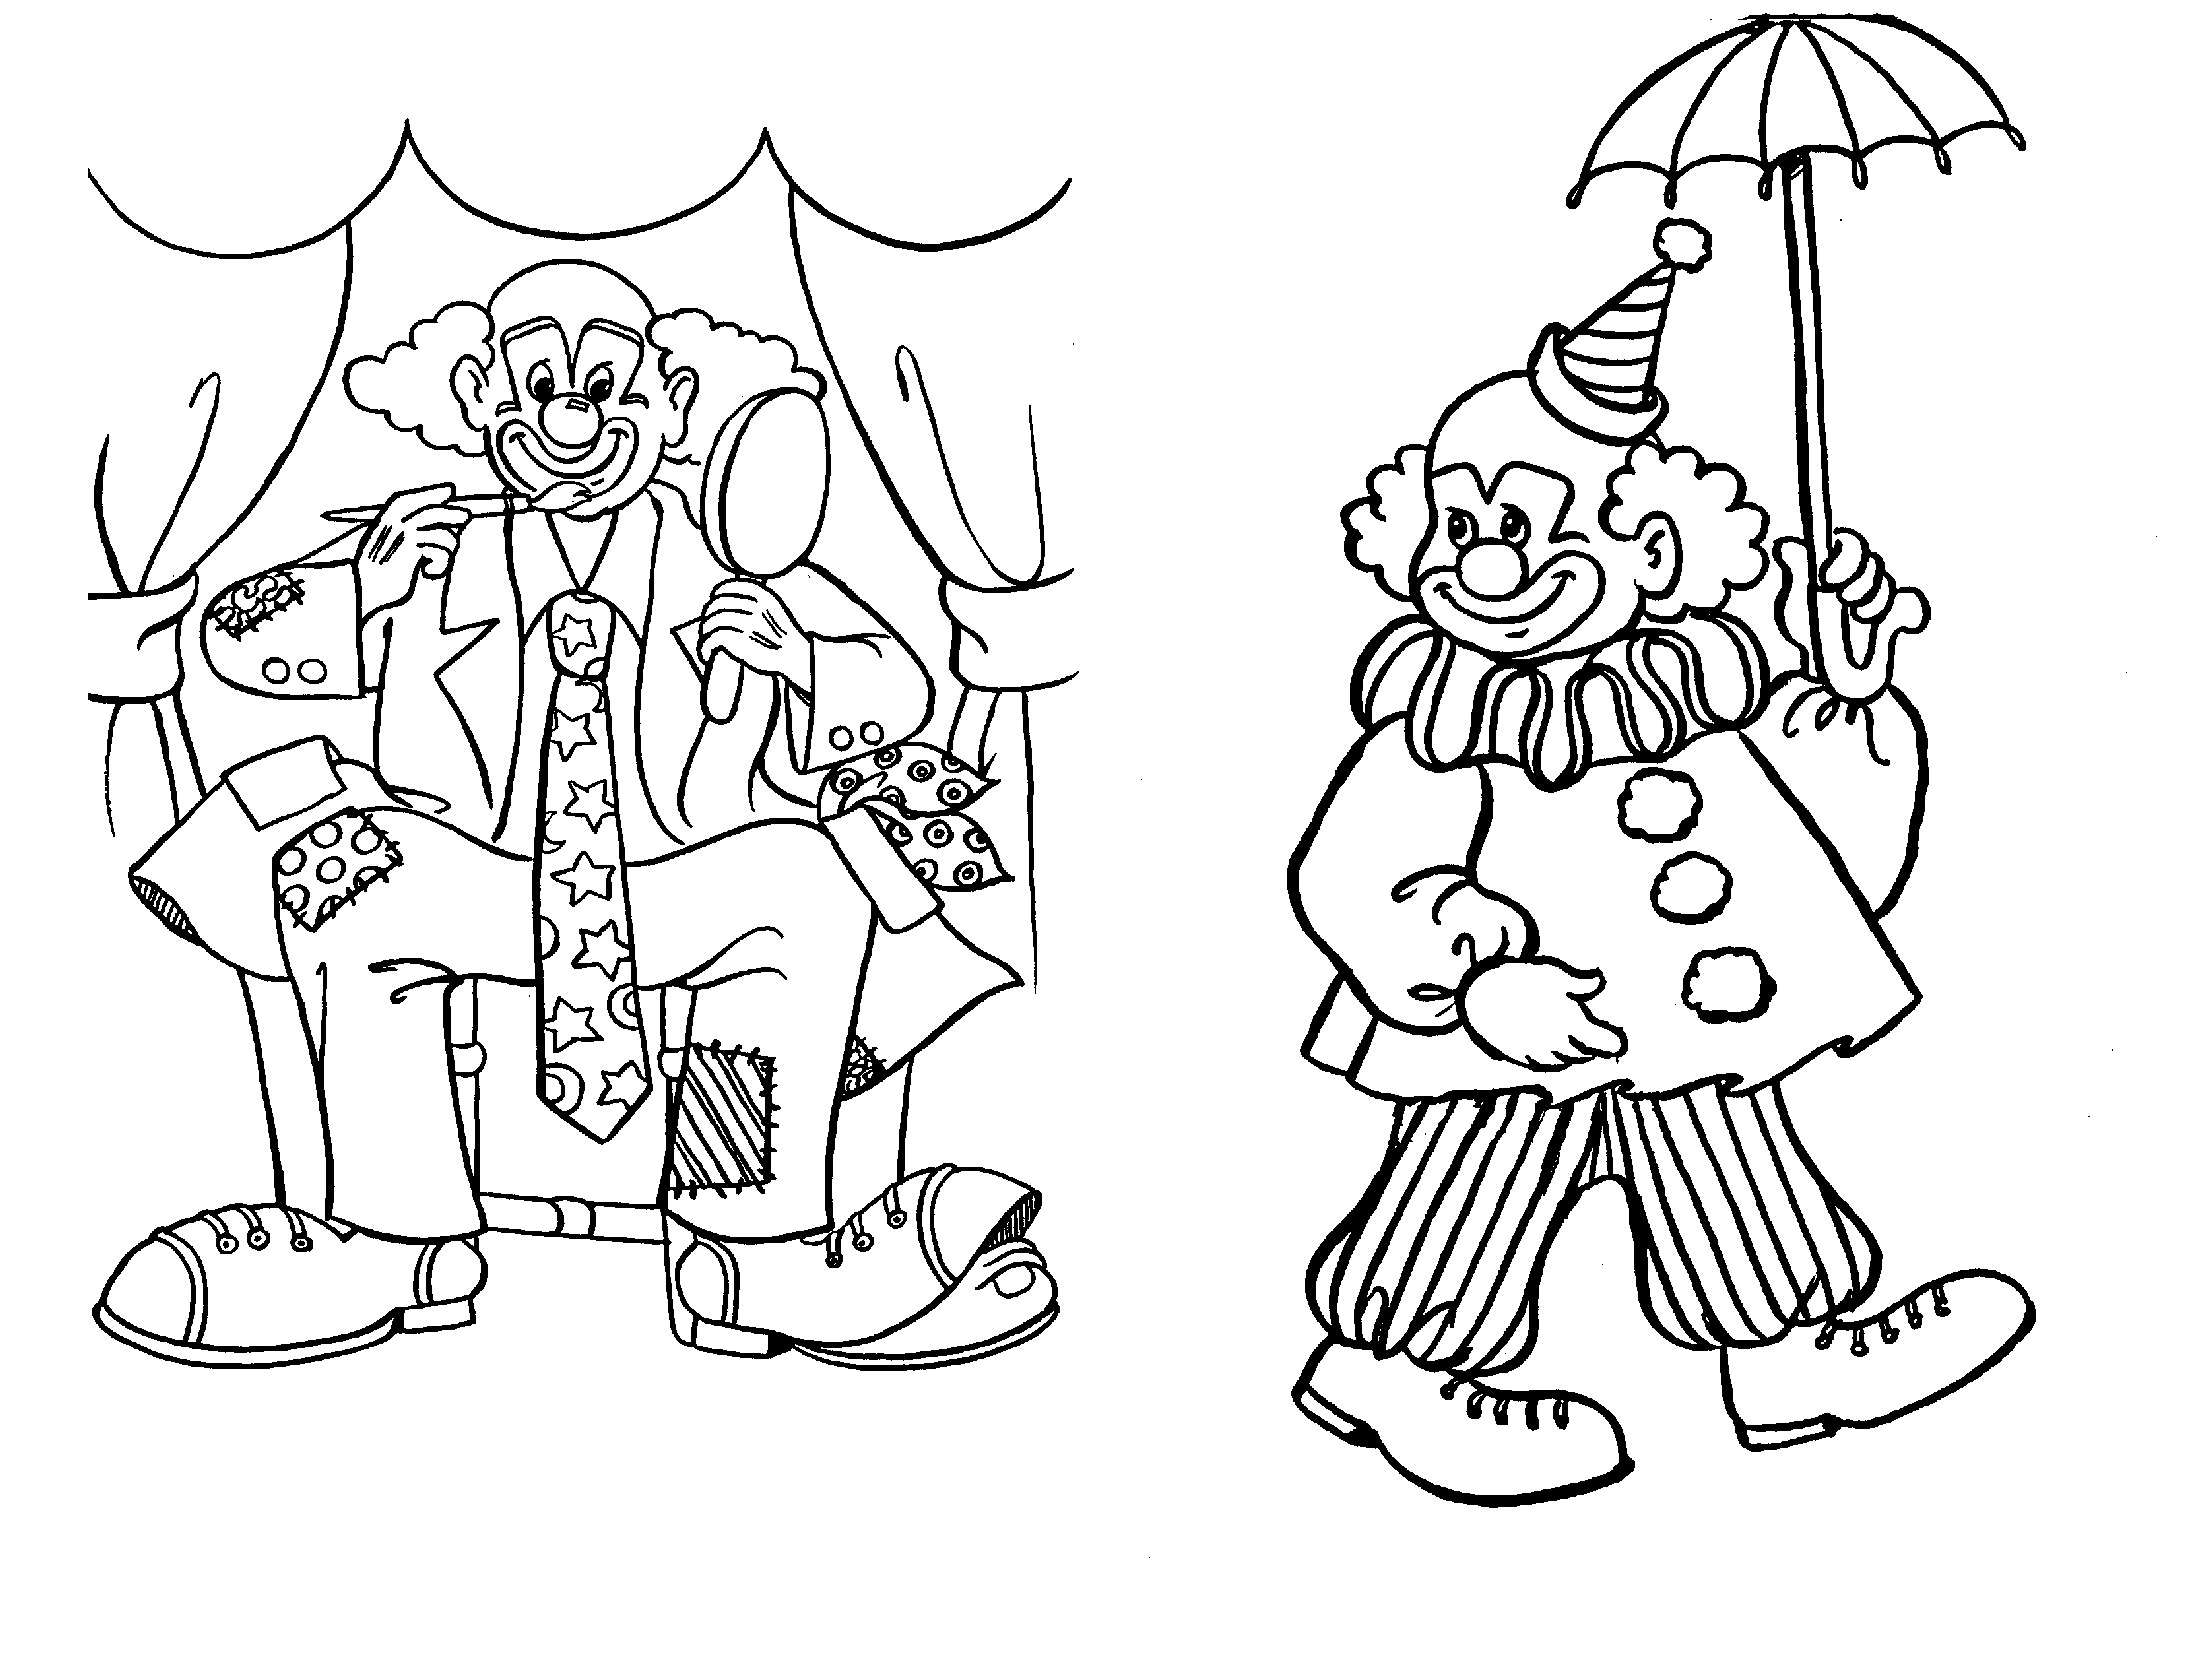 Printable clown coloring sheets murderthestout for Clowns coloring pages